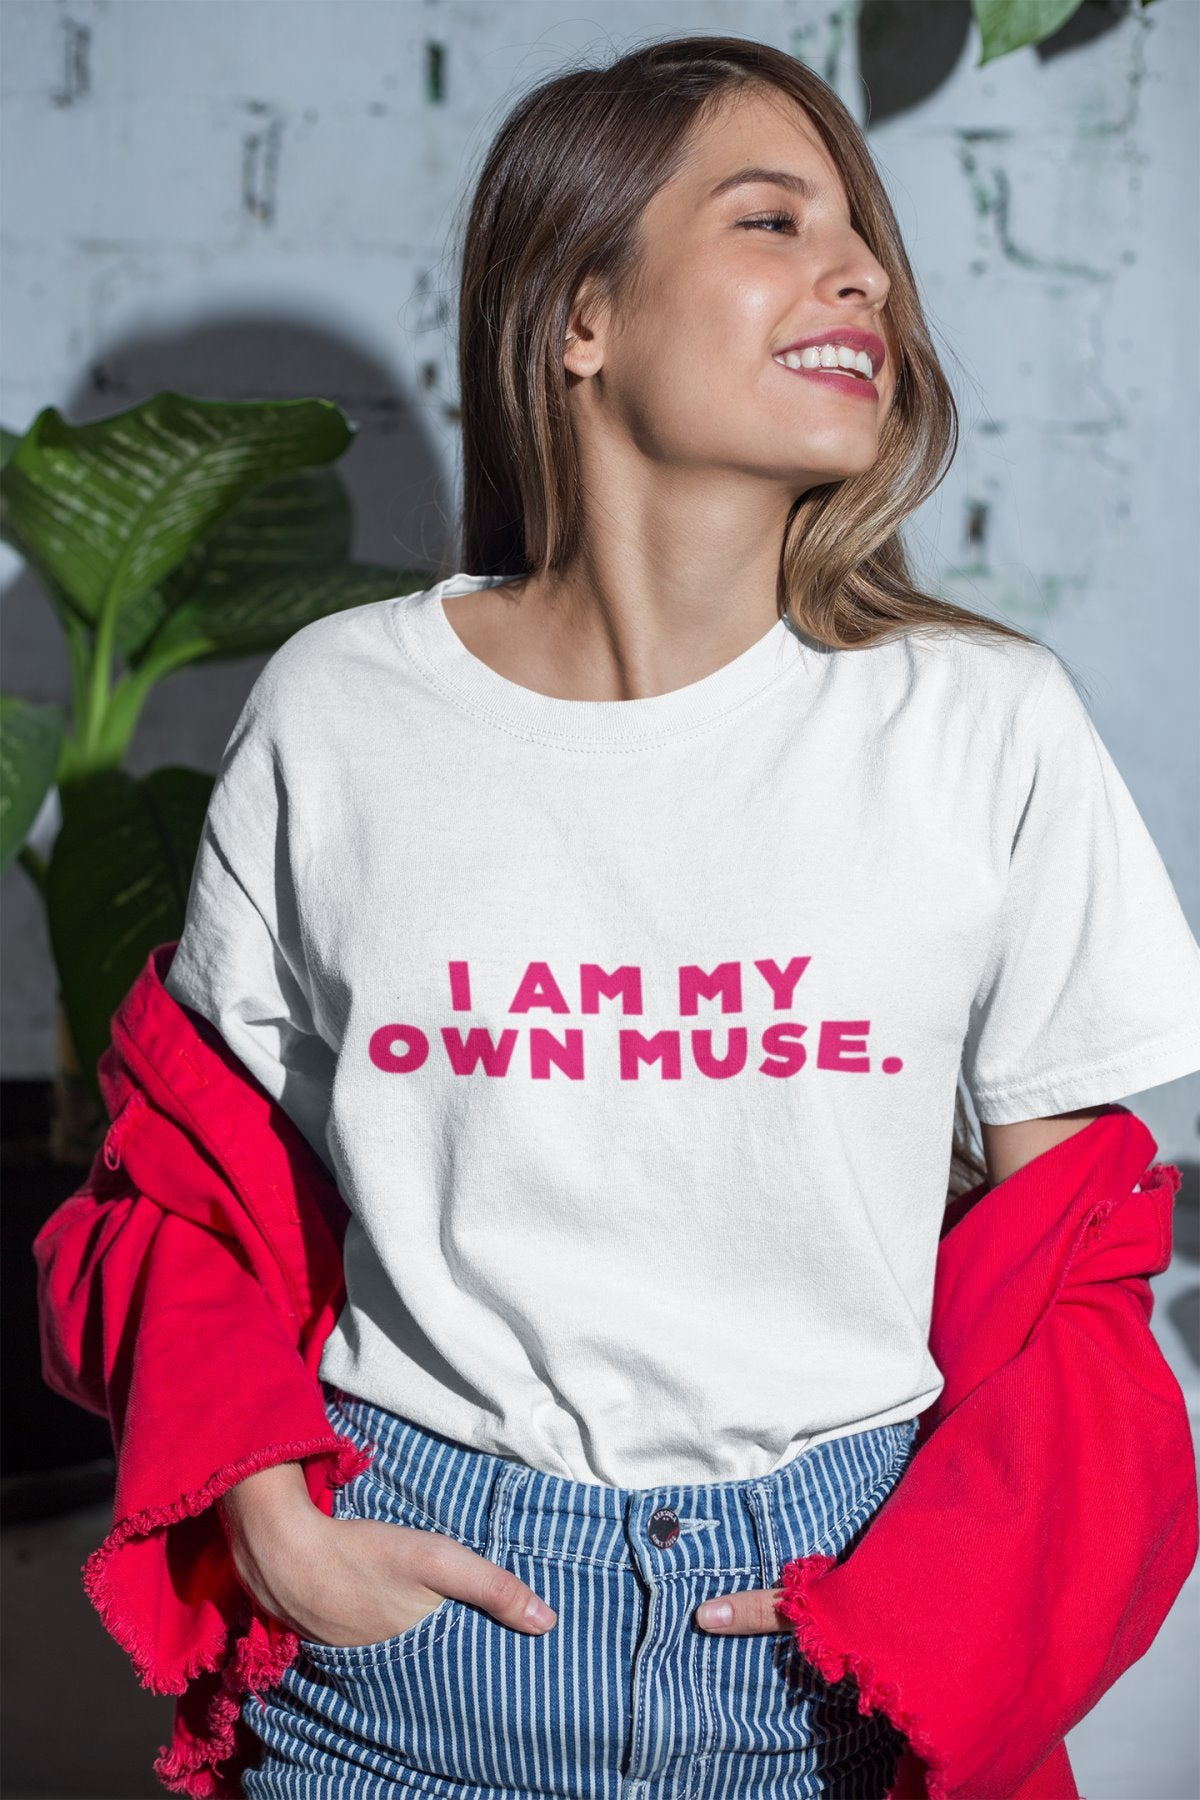 I Am My Own Muse - Unisex Shirt